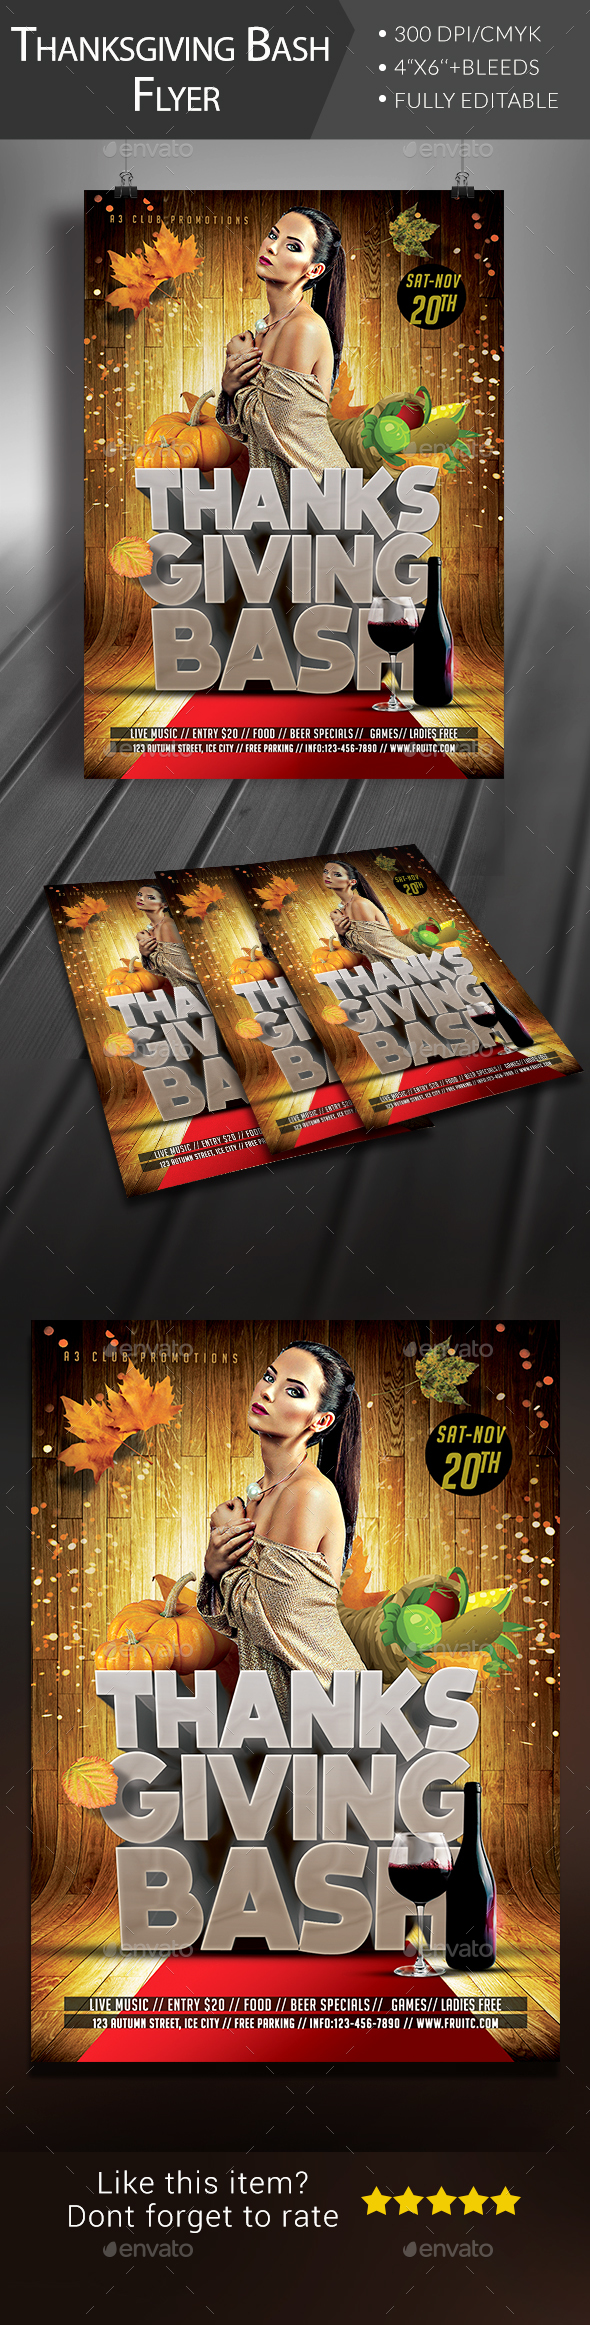 Thanksgiving Bash Flyer - Clubs & Parties Events